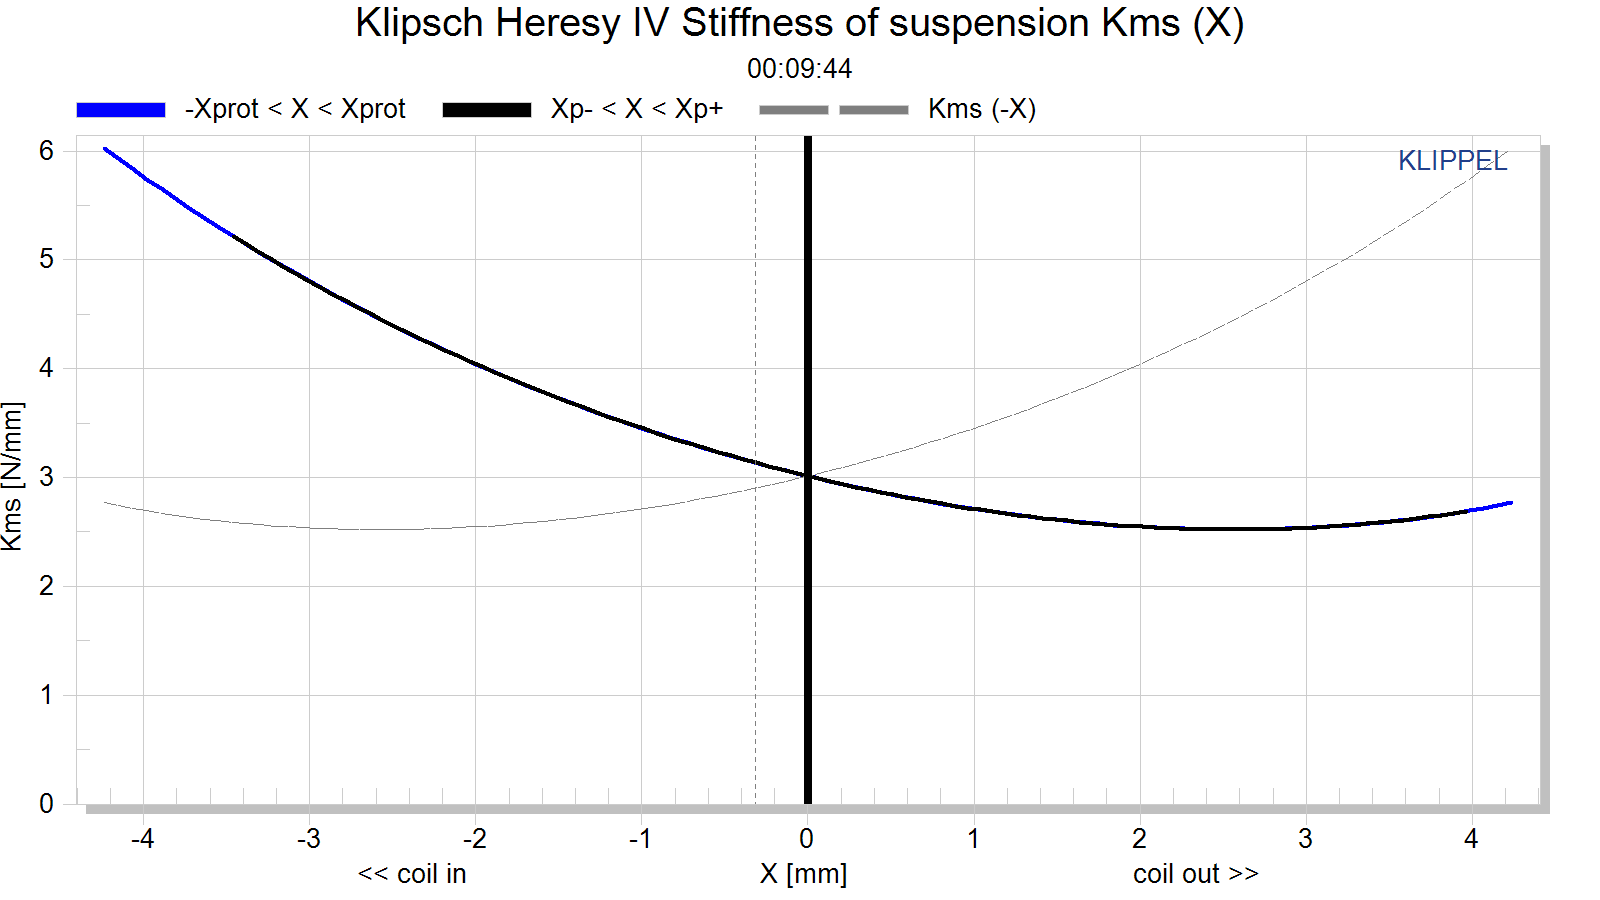 Klipsch Heresy IV Stiffness of suspension Kms (X).png